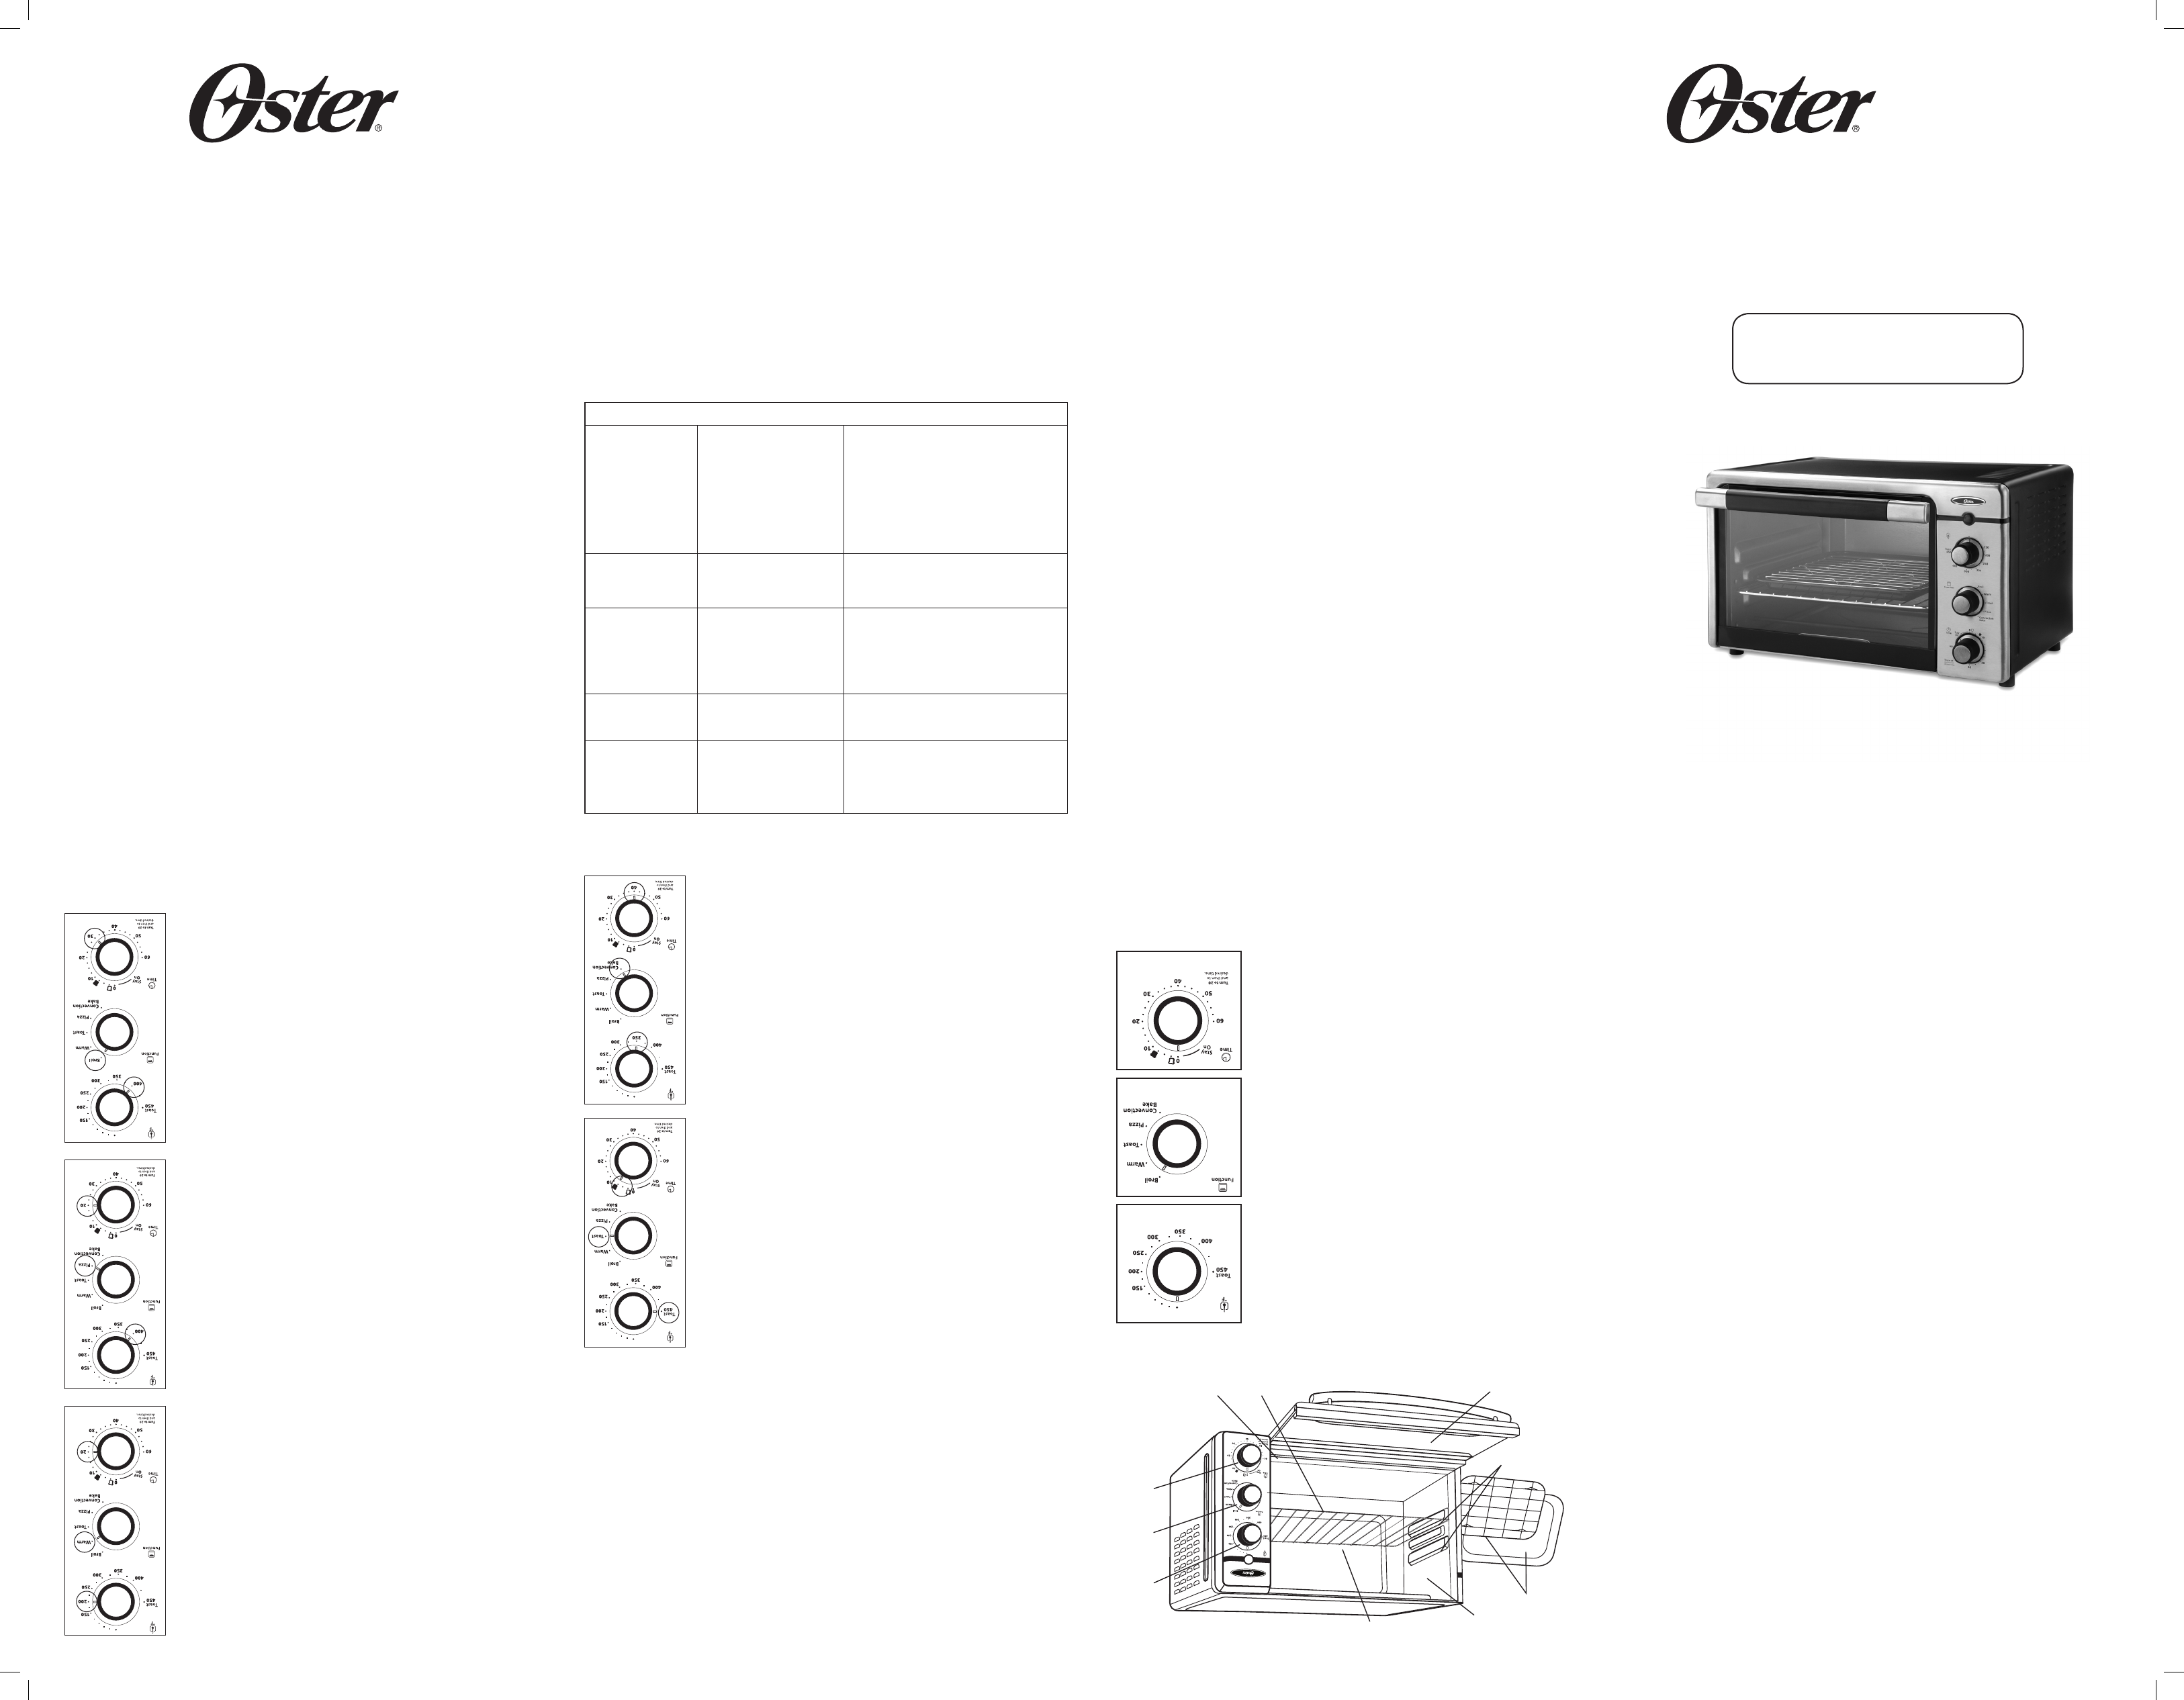 charming oster toaster wiring diagram pictures best image wiring diagram cashsigns us farberware instruction manuals Farberware Programmable Coffee Maker